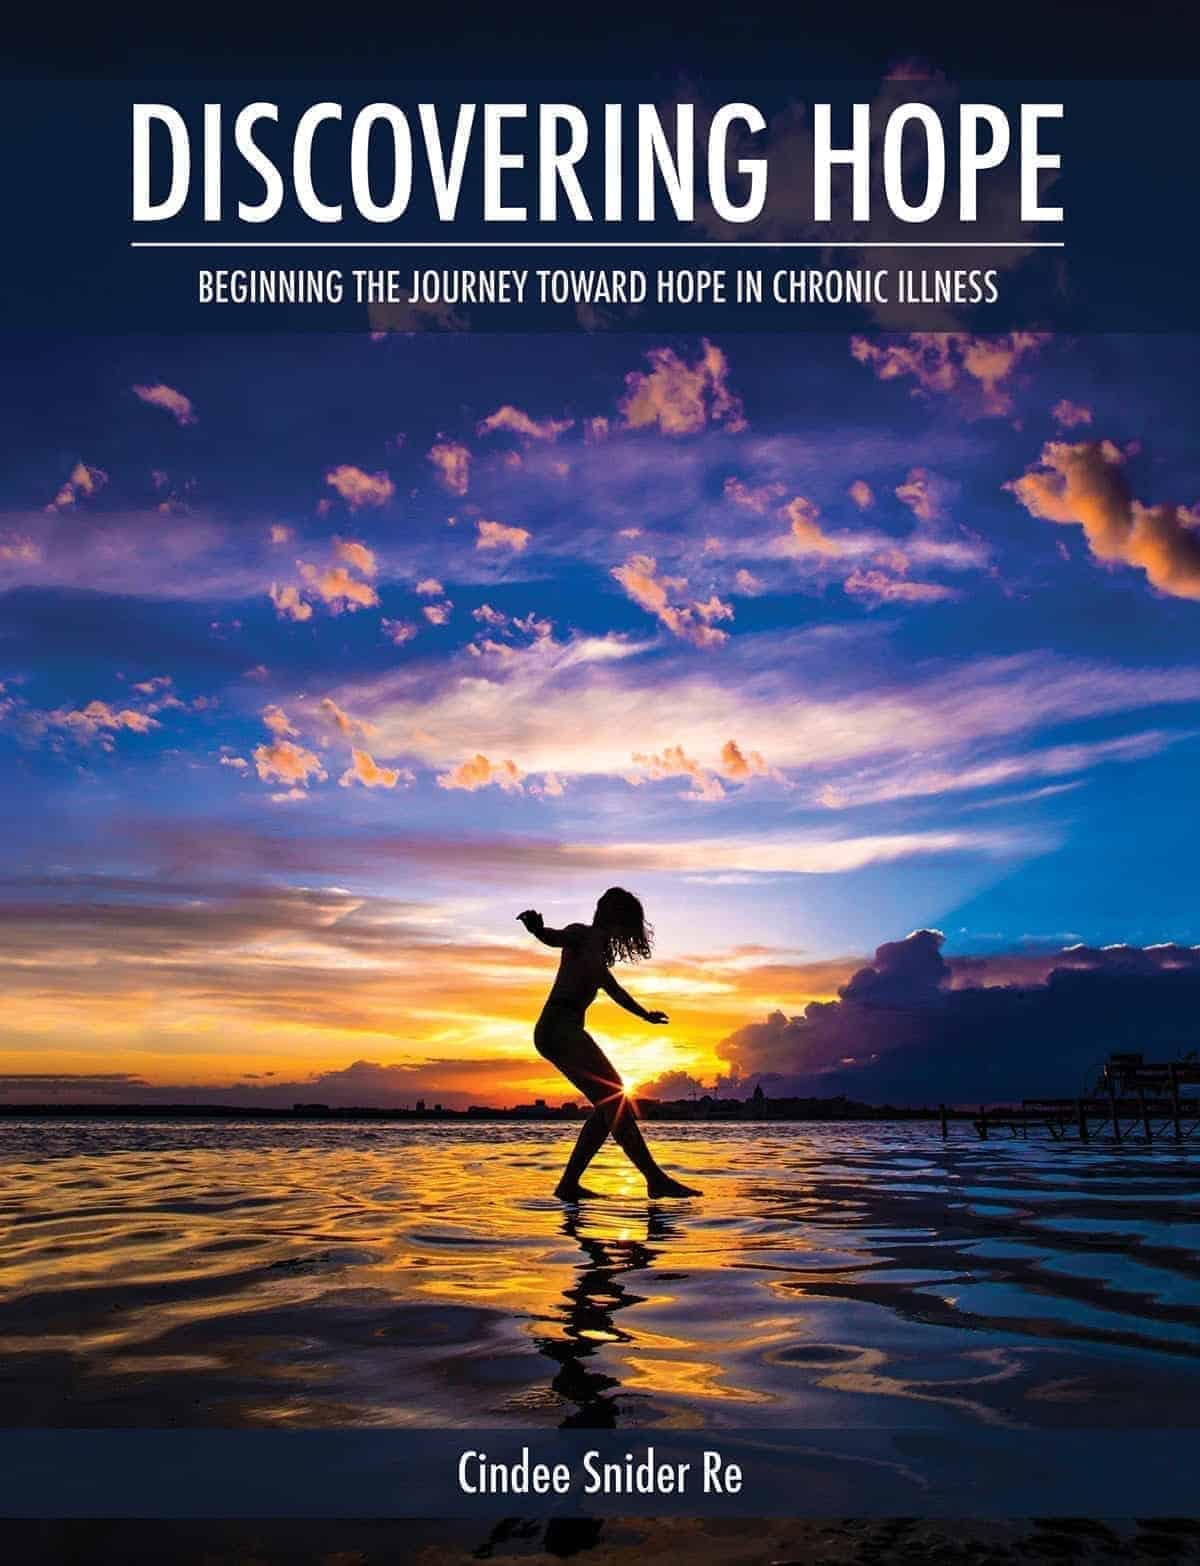 Discovering Hope: Beginning the Journey Toward Hope in Chronic Illness (Chronic Joy Thrive Series) (Volume 1)